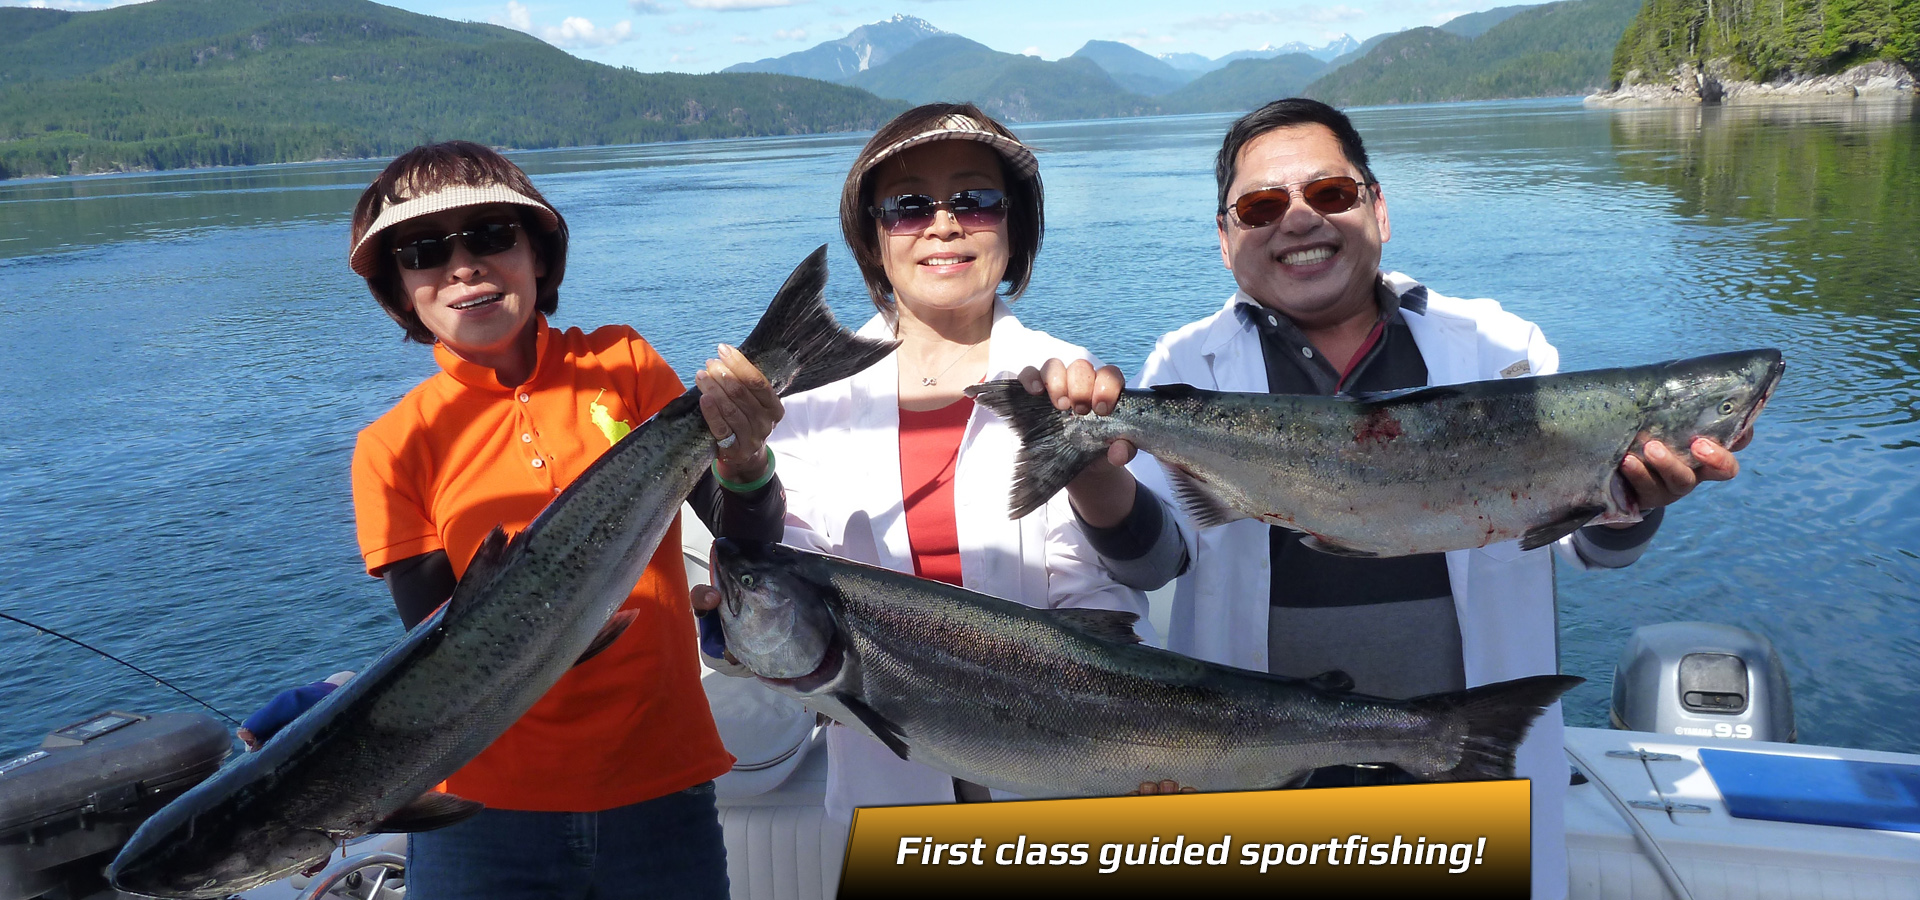 profish first class salmon fishing